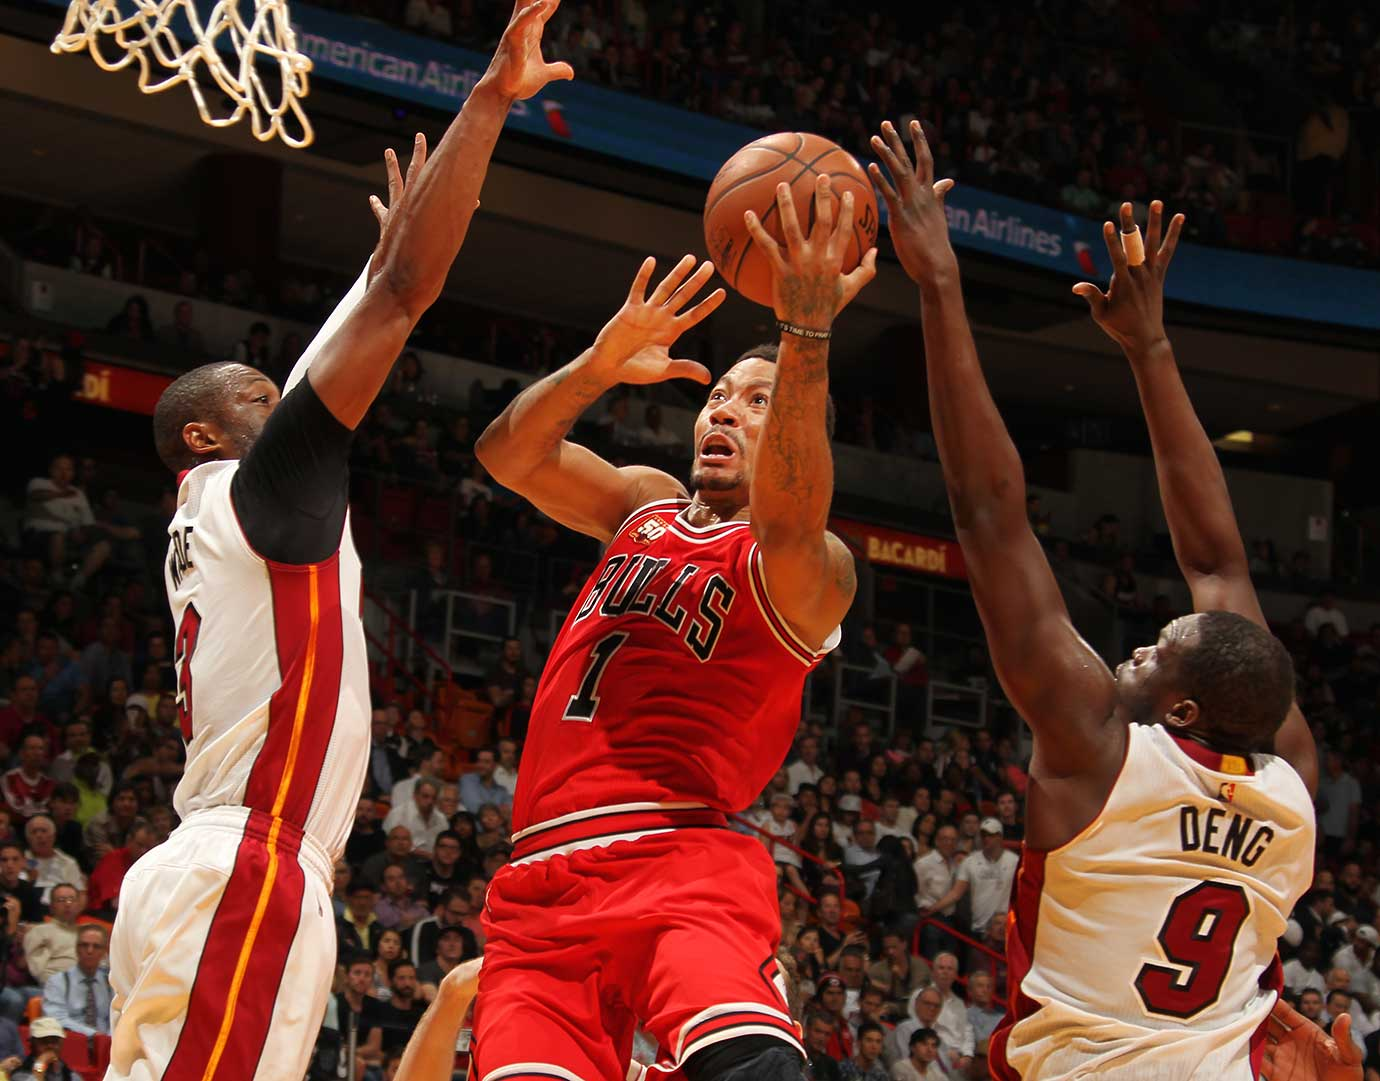 Derrick Rose of the Chicago Bulls goes for a layup against the Miami Heat.